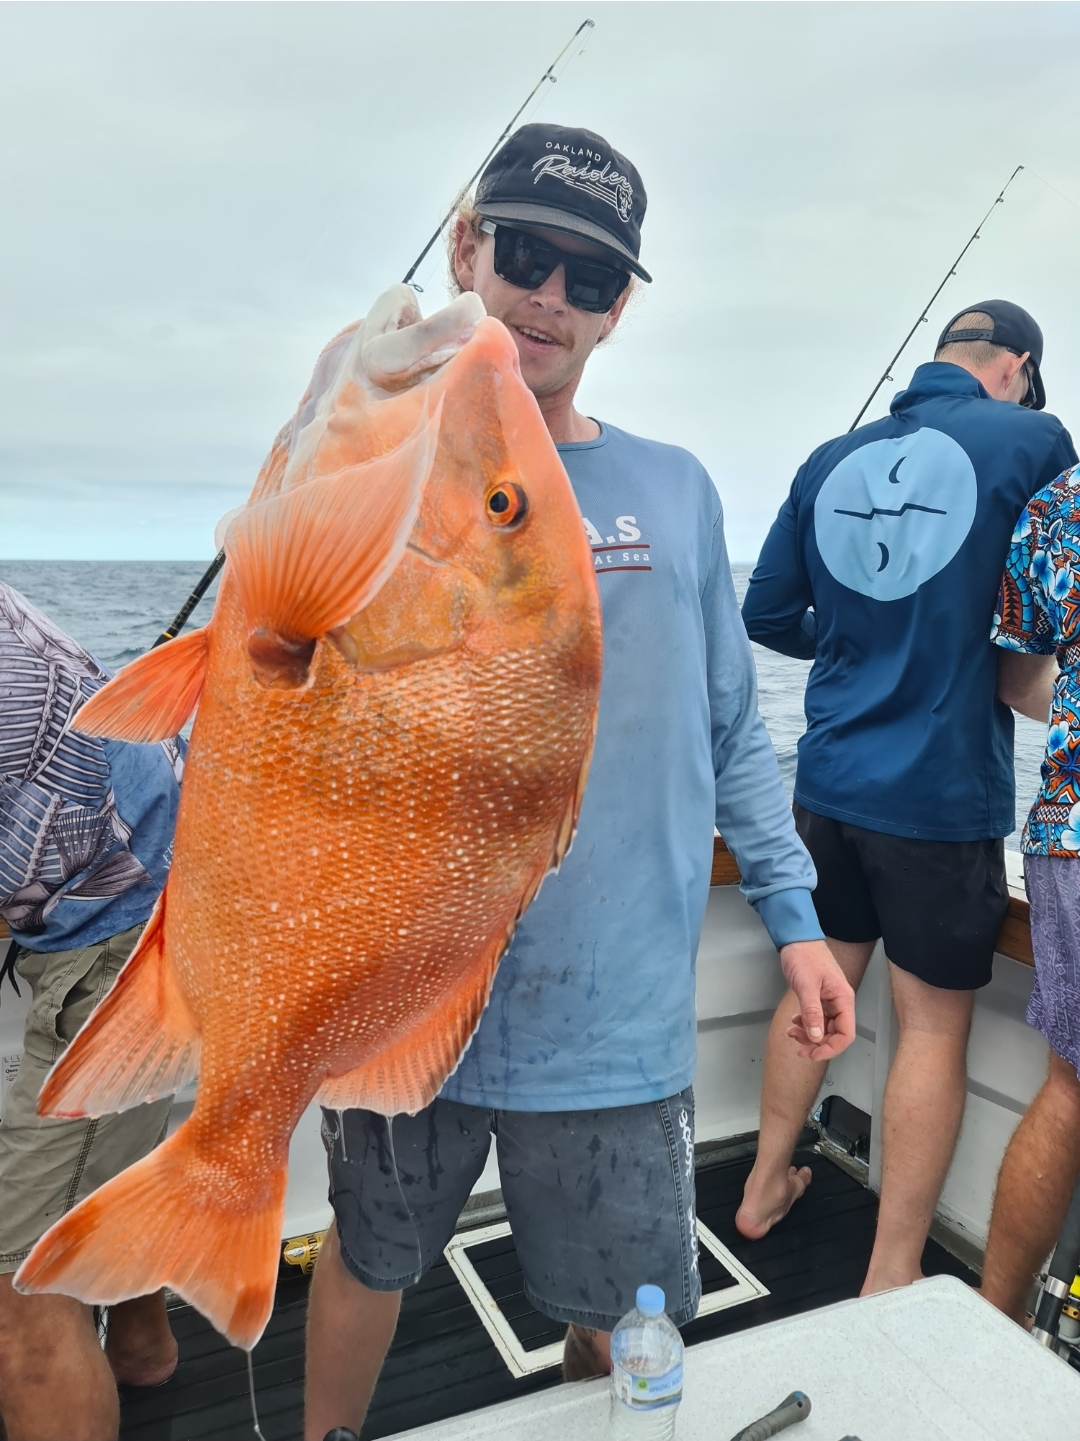 Full Day Reef Fishing Charter Whitsundays Outer Reef